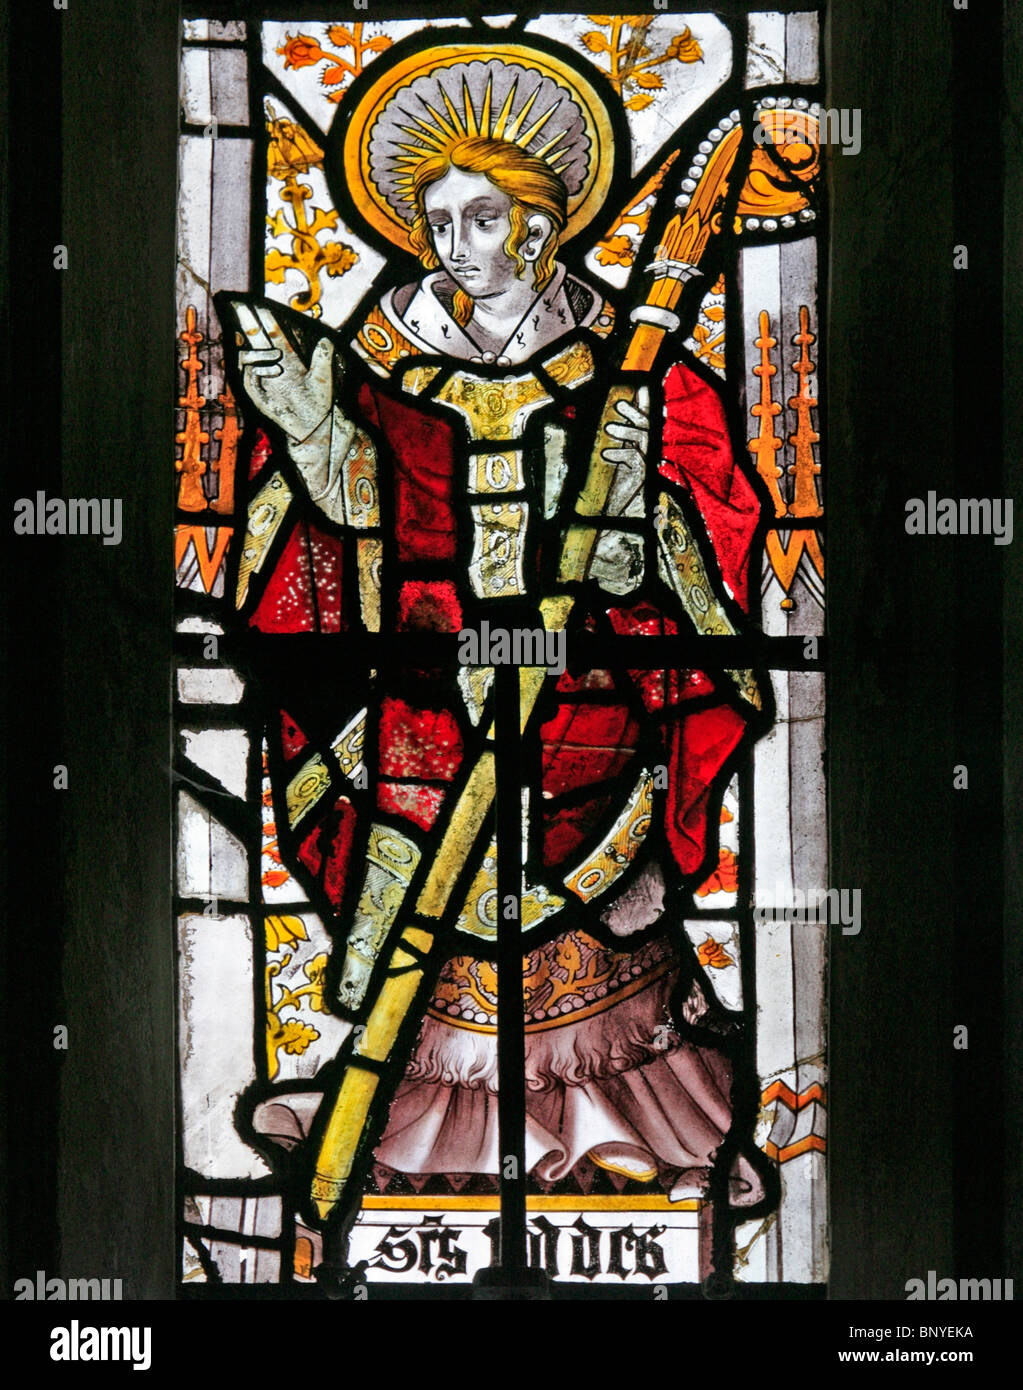 A 16th century stained glass window thought to have come from Germany depicting Saint Chad or Ceadda - Stock Image